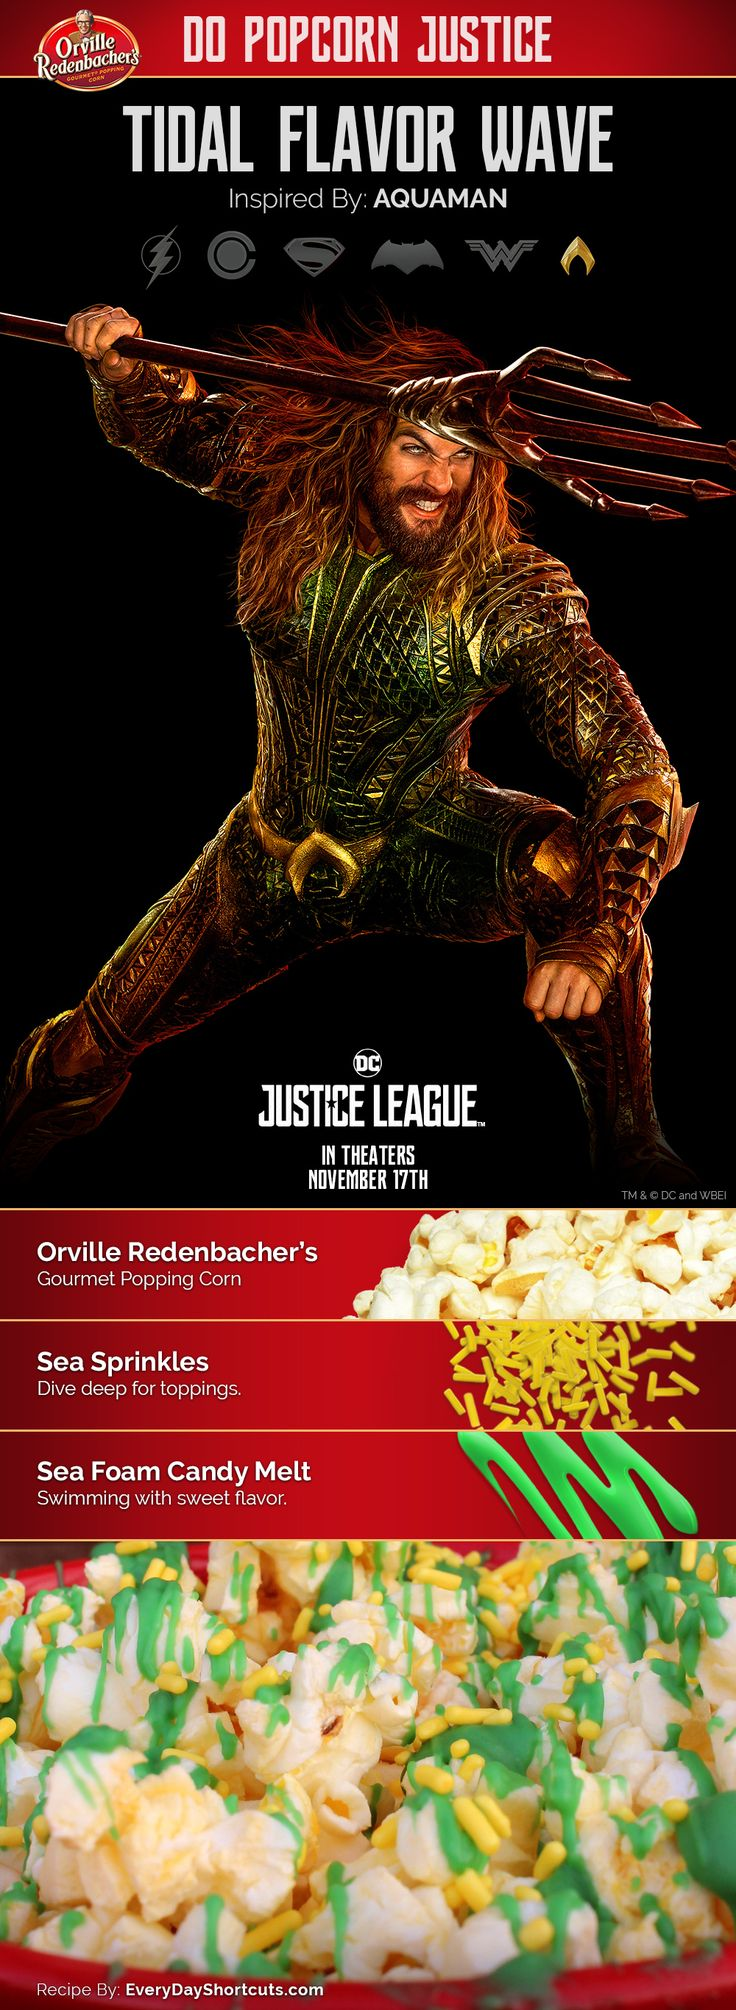 Tidal Flavor Wave Popcorn: inspired by Aquaman #orvillepopcornjusticesweepstakes